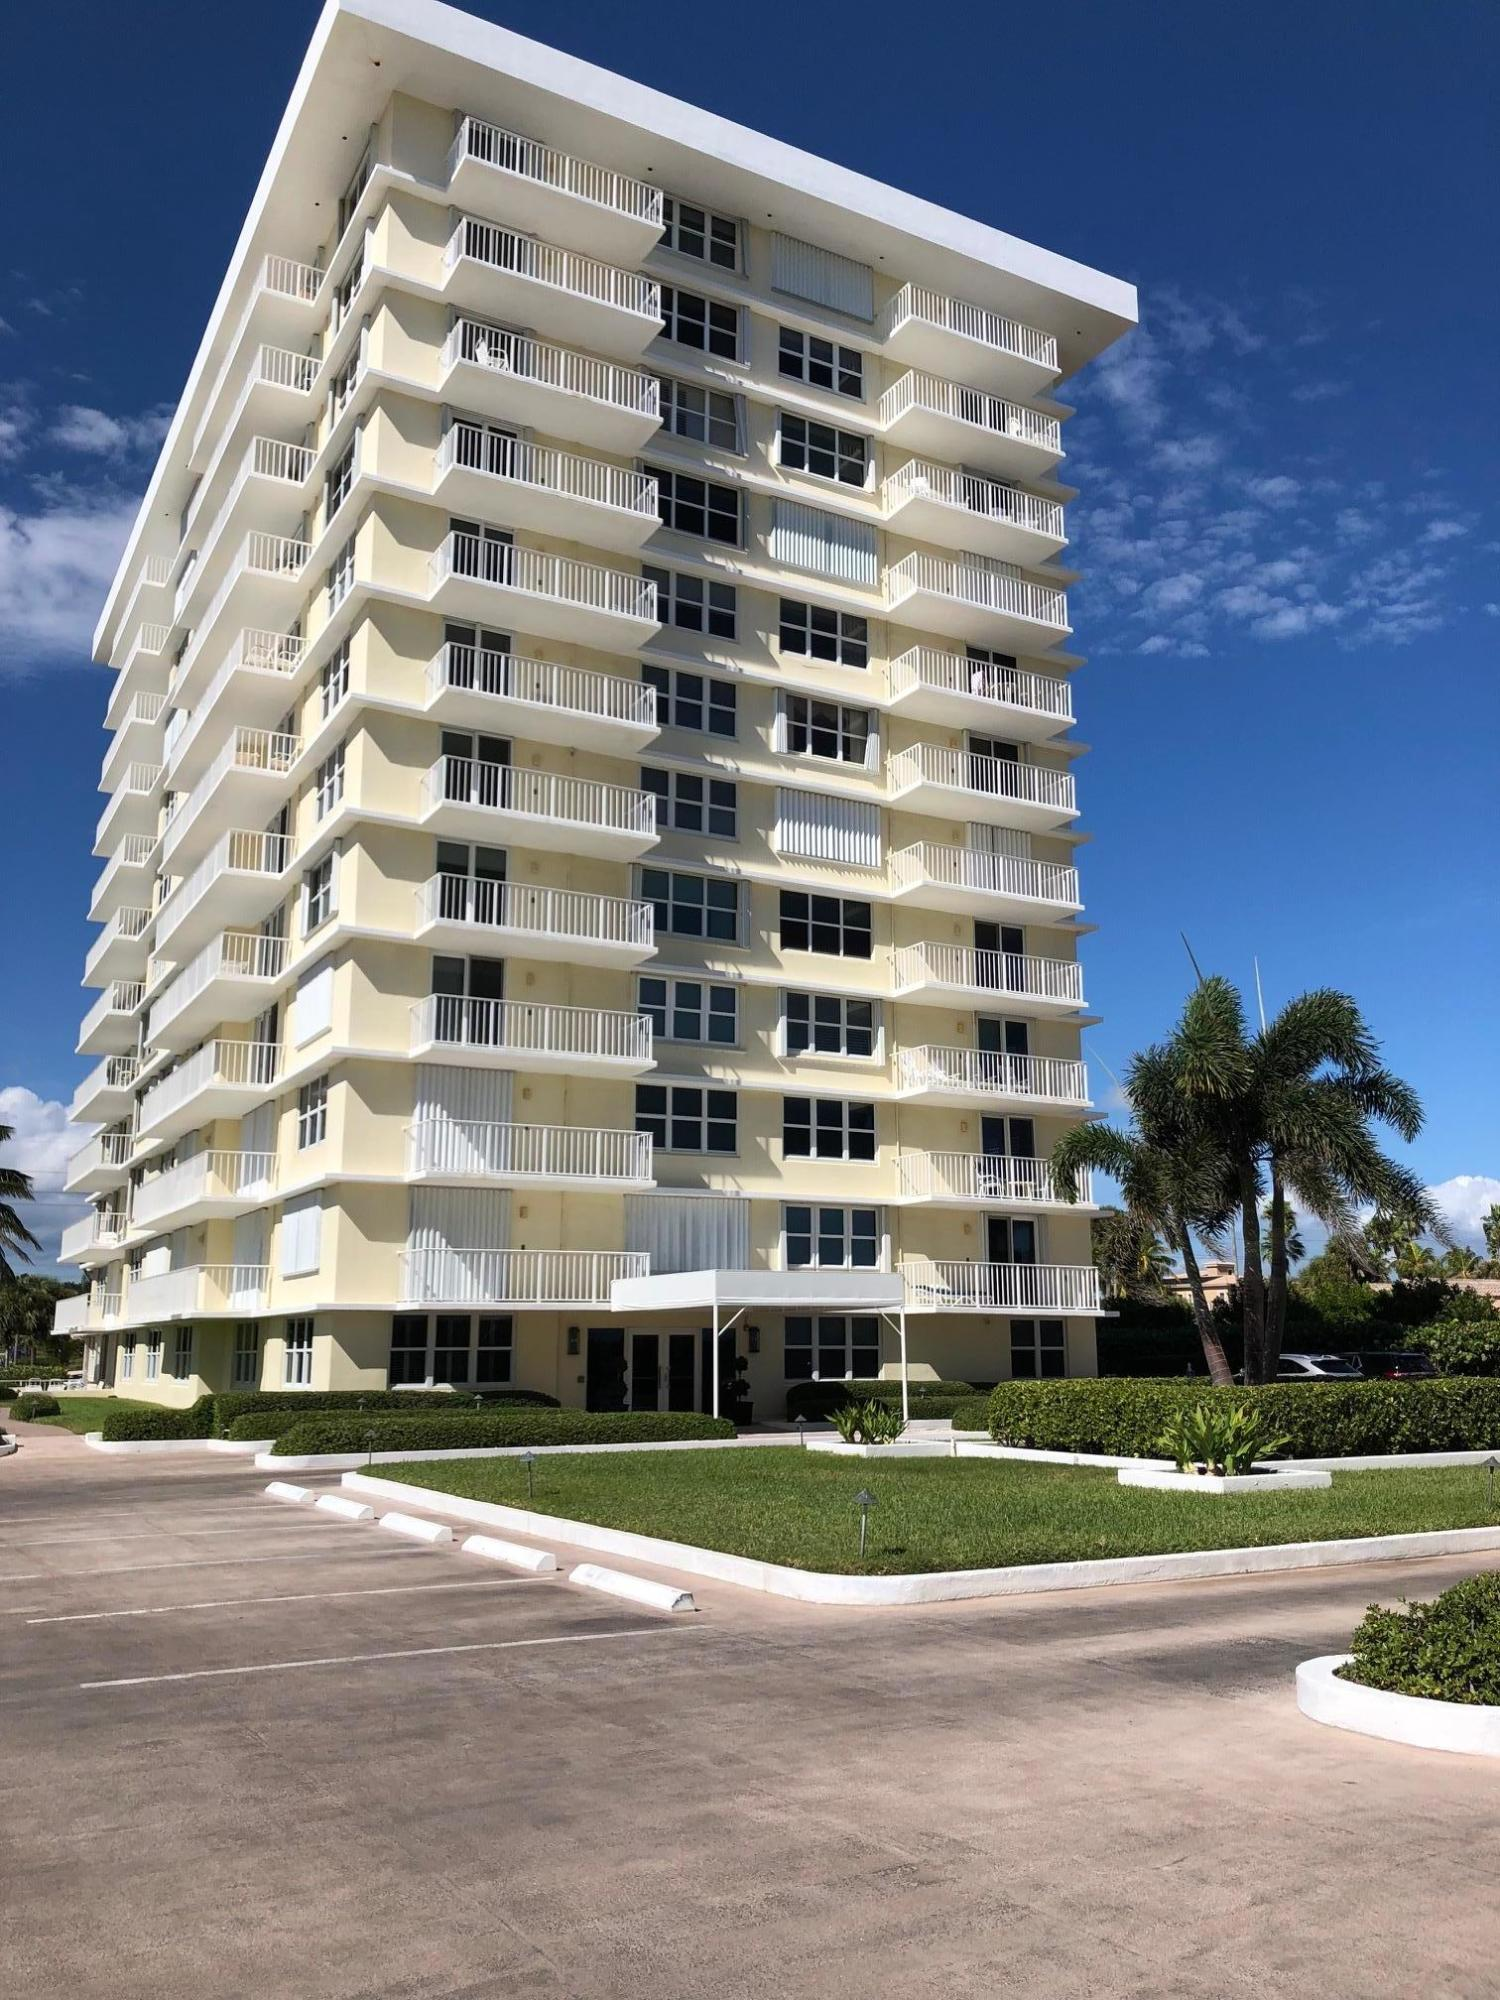 New Home for sale at 500 Ocean Drive in Juno Beach